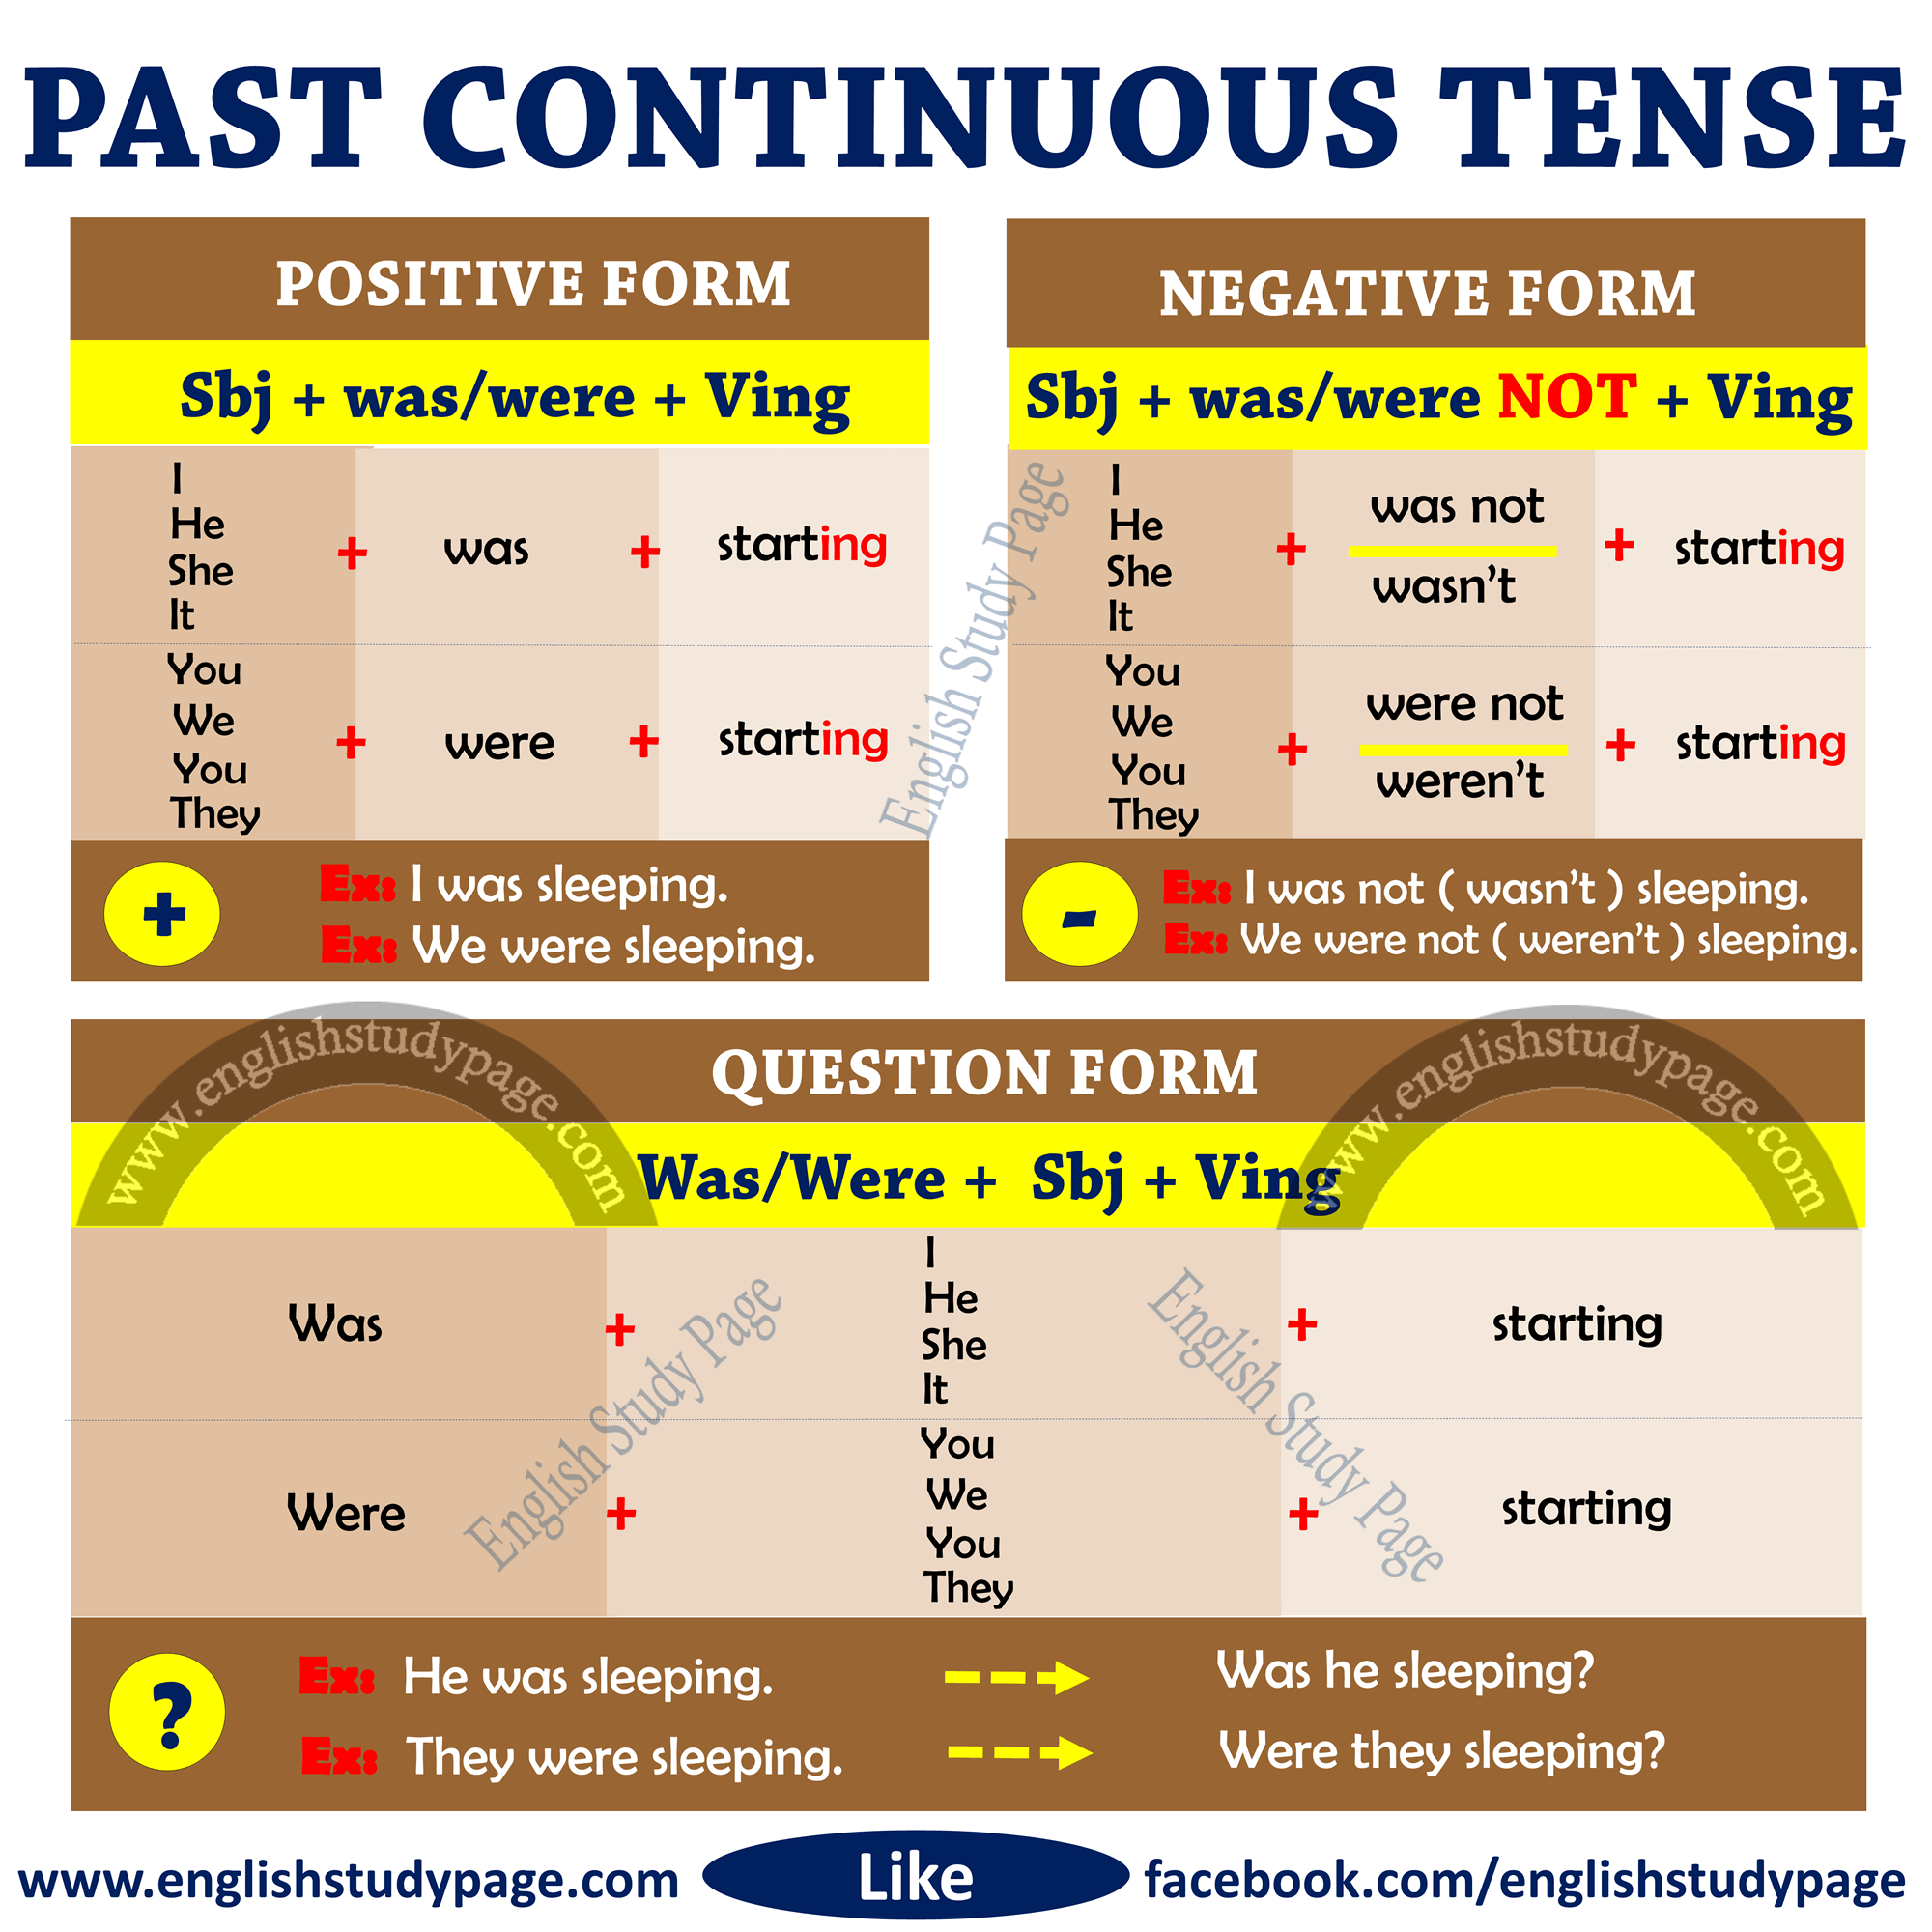 Structure Of Past Continuous Tense